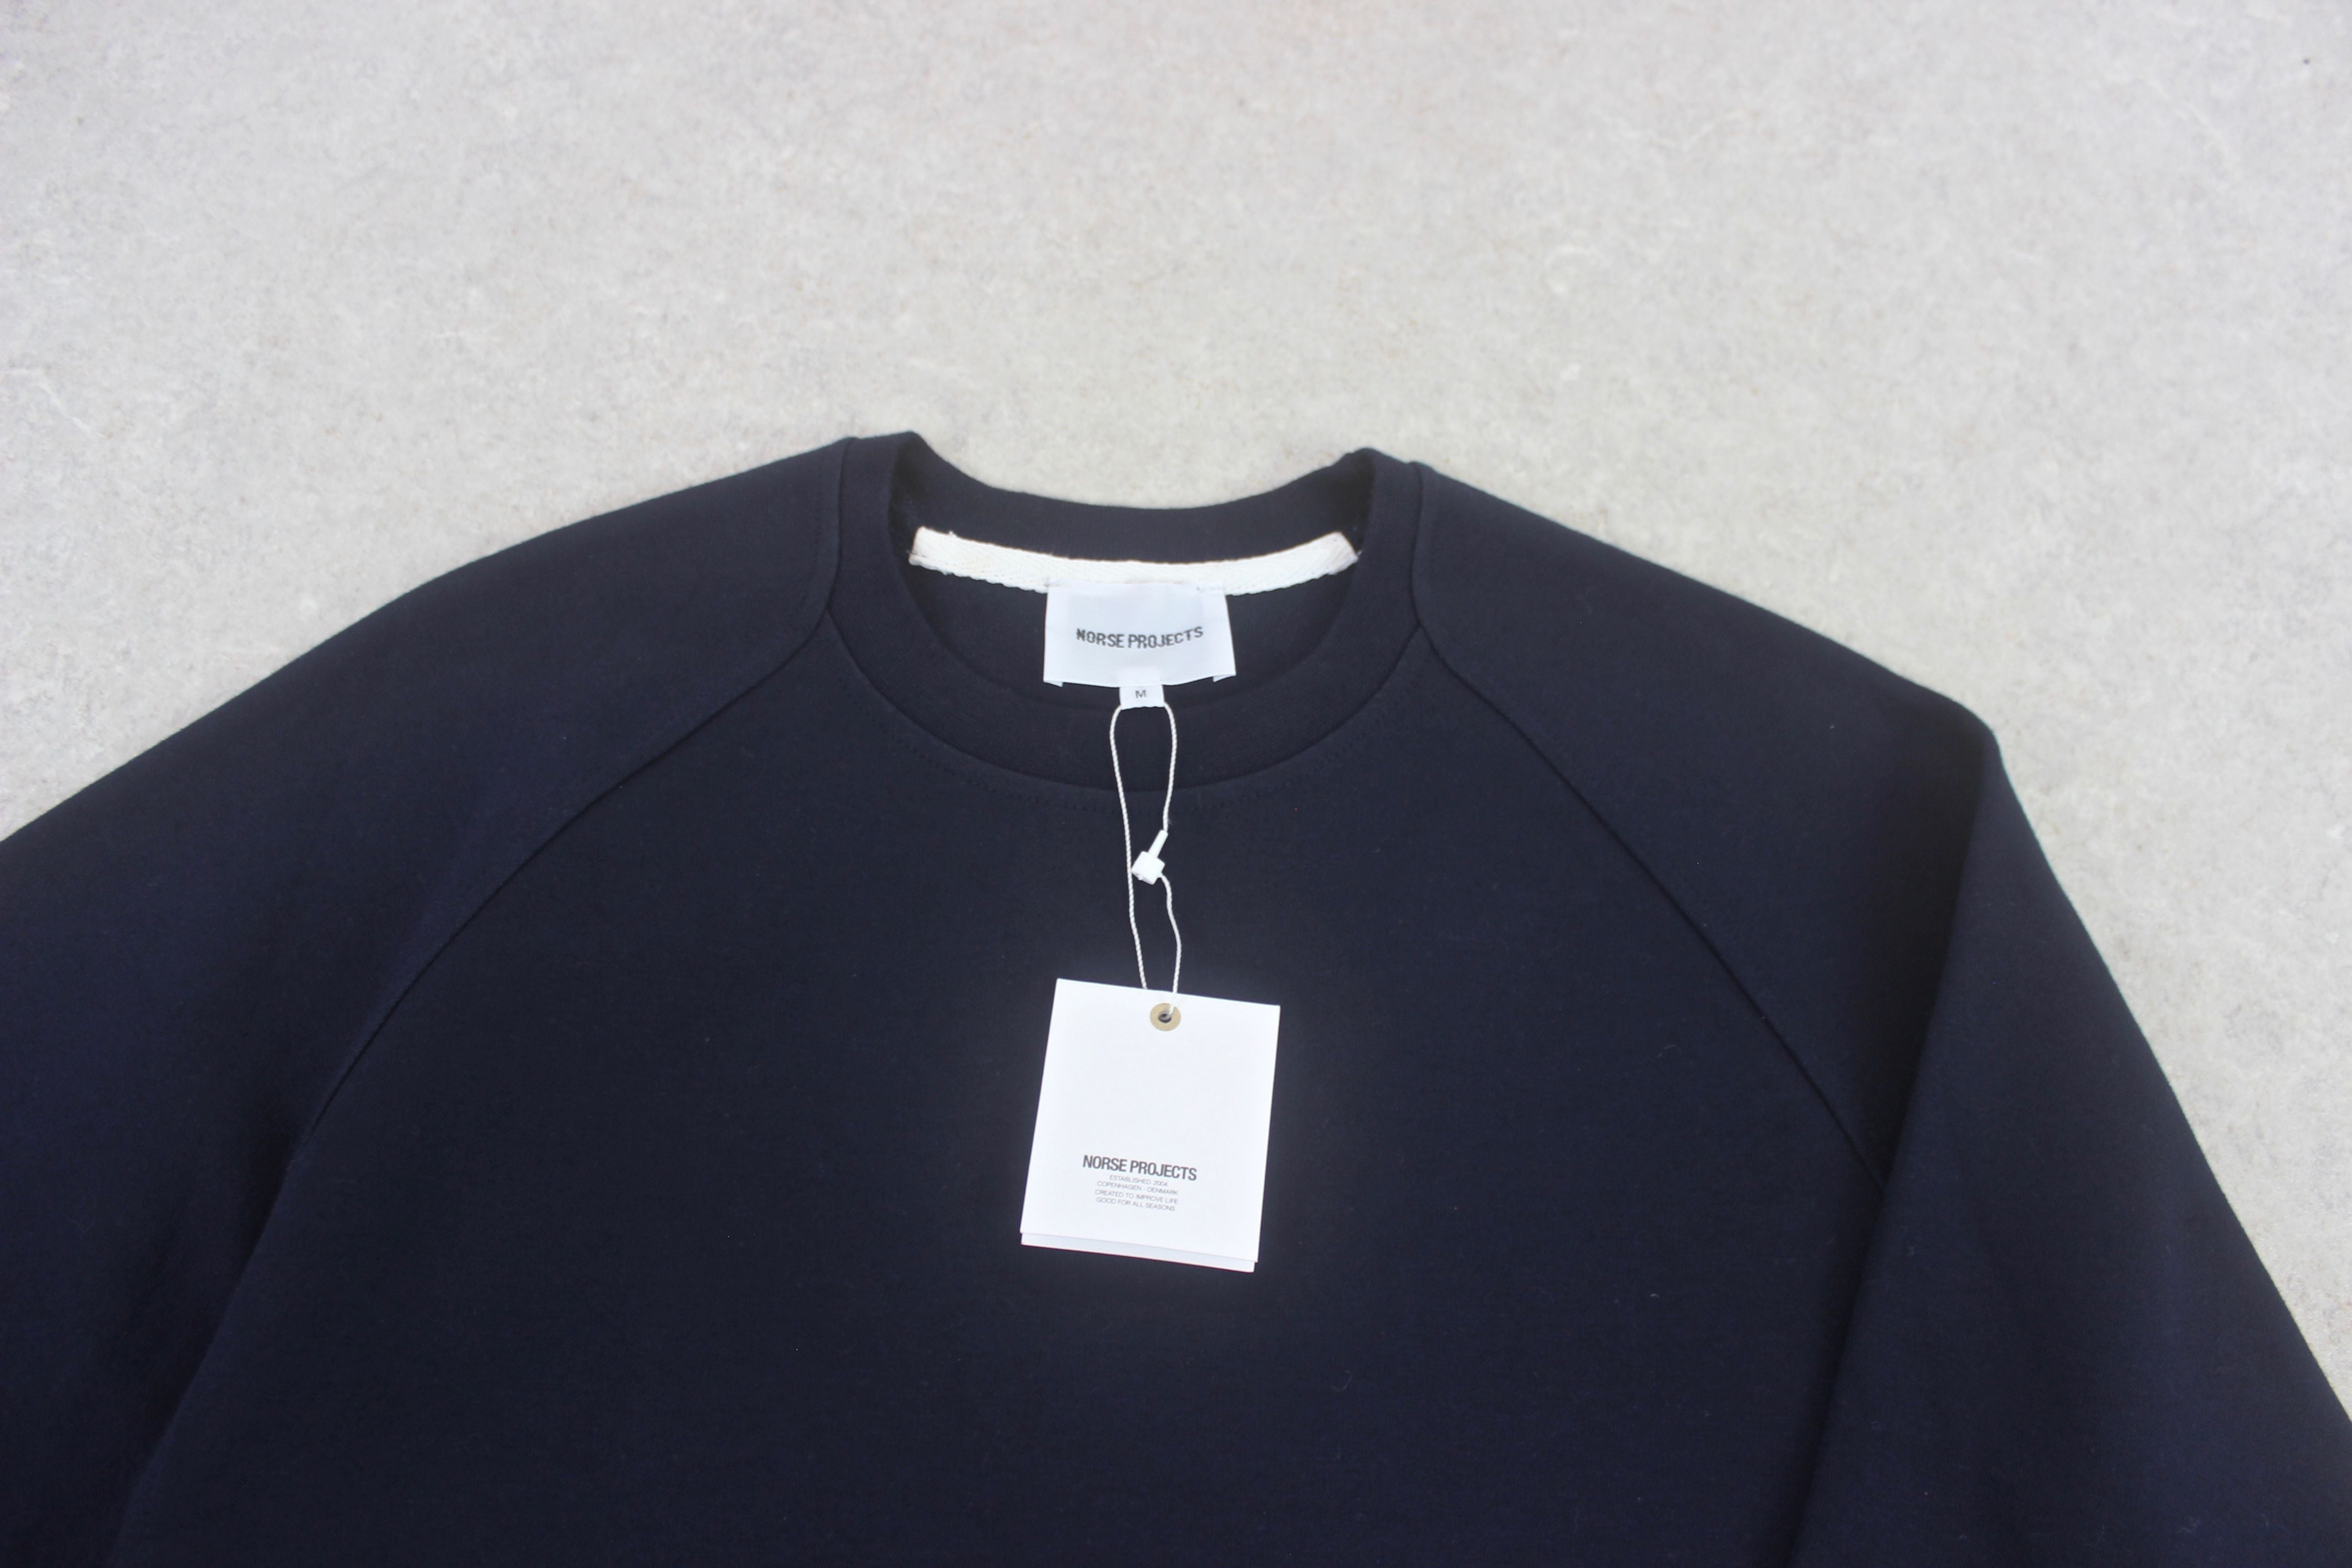 Norse Projects - Sweatshirt Jumper - Navy Blue - Medium